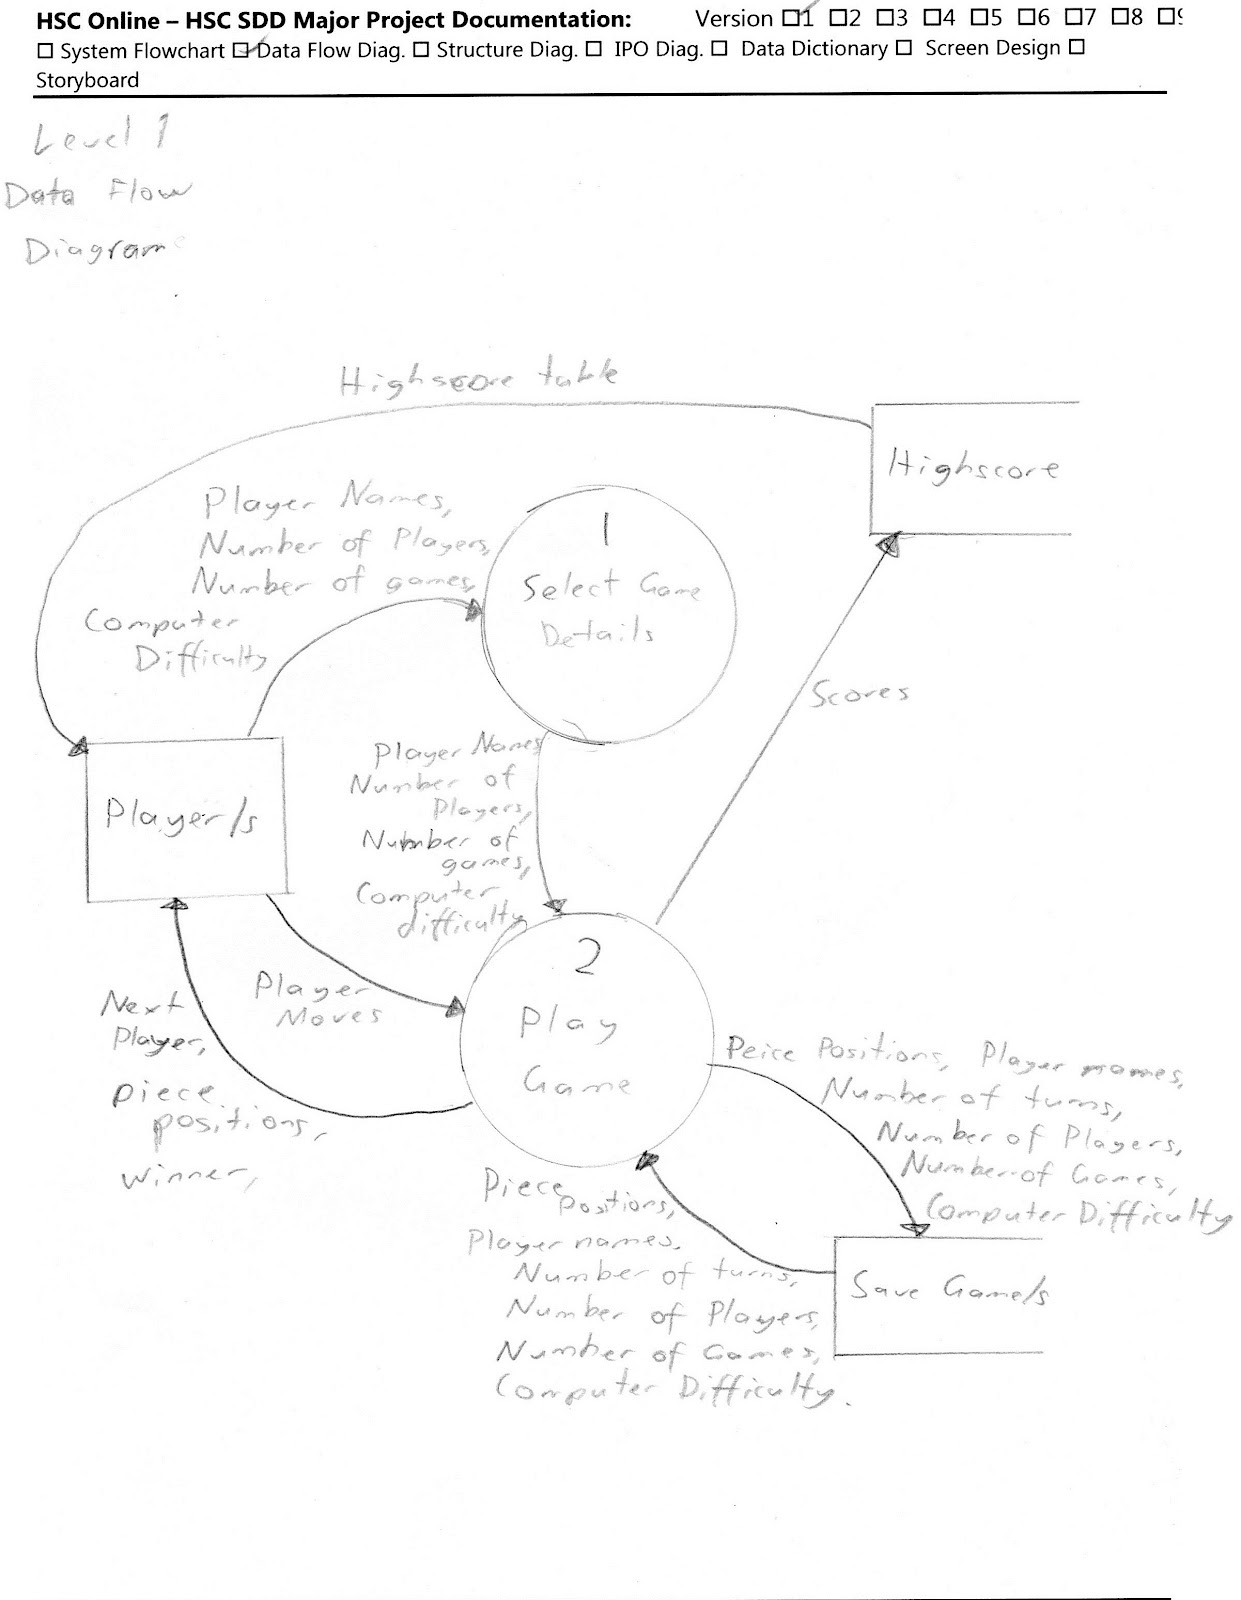 nyeh blog  level 1 data flow diagram